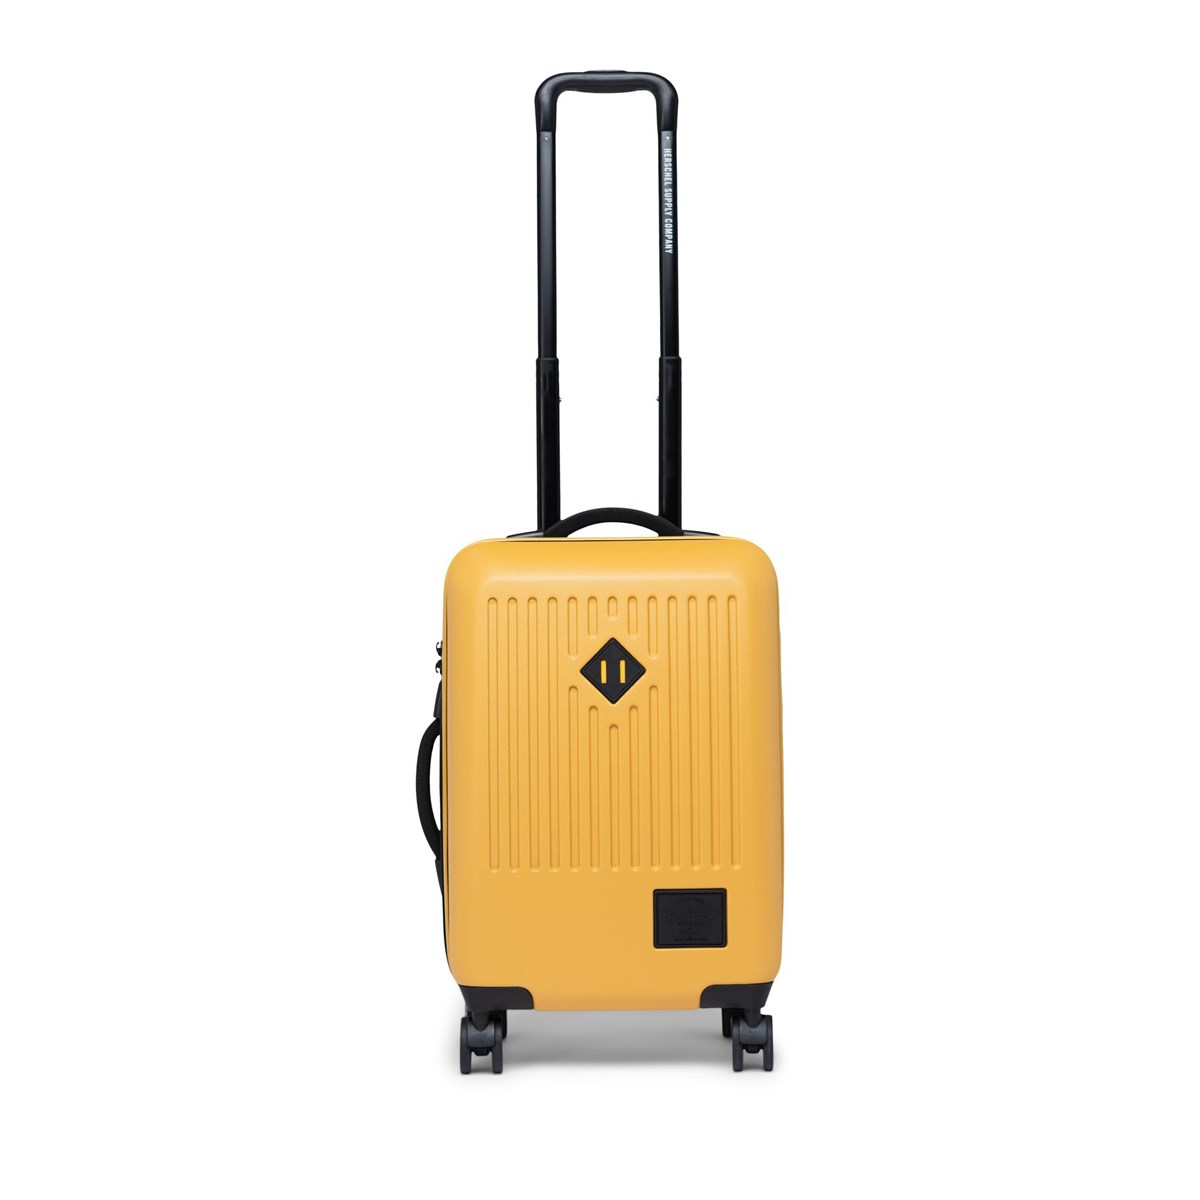 Trade Small Luggage in Gold